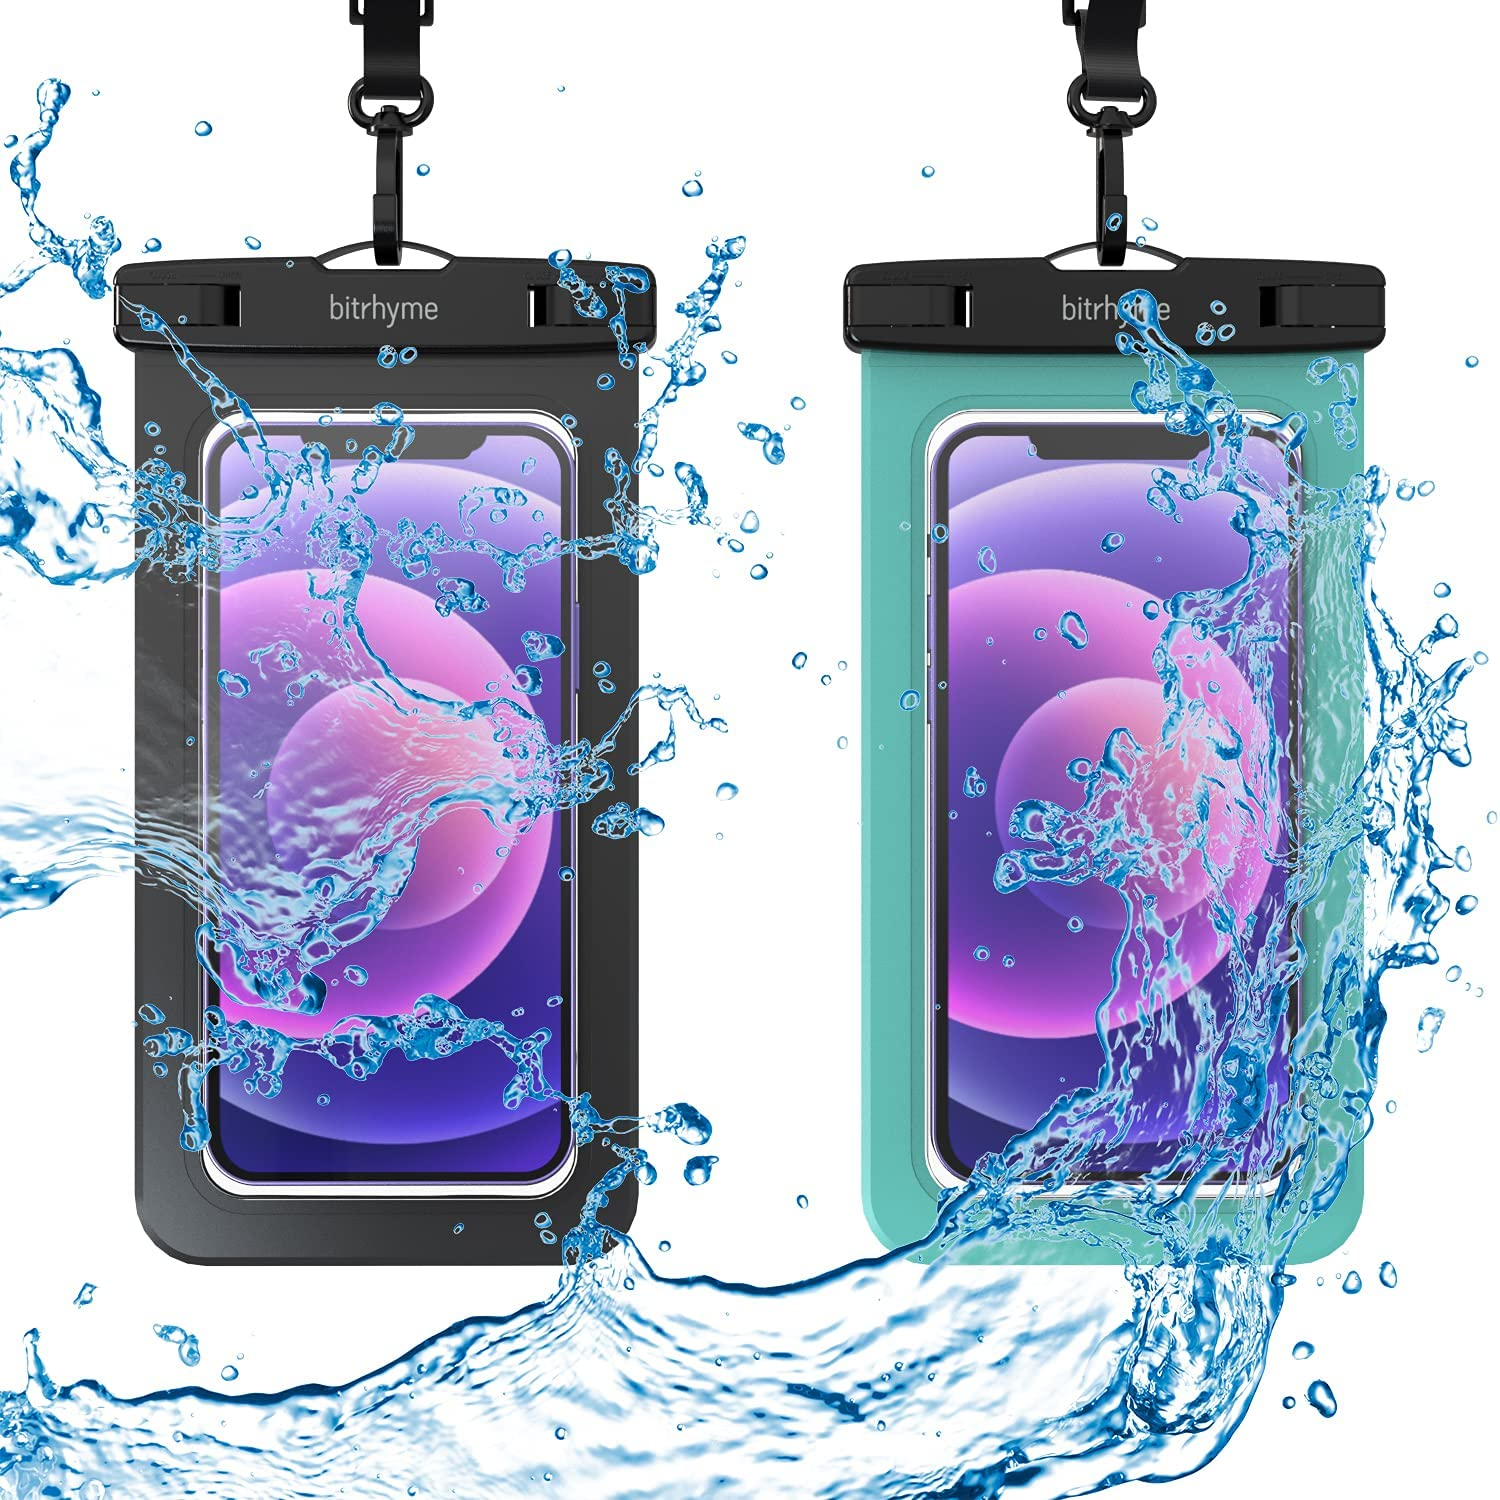 Bitrhyme Waterproof Phone Case 2 Packs IPX8 Universal Waterproof Phone Pouch Underwater Waterproof Bag for Phone Dry Bag for Beach Swimming Kayaking up to 7 Inches(Black/Mint)